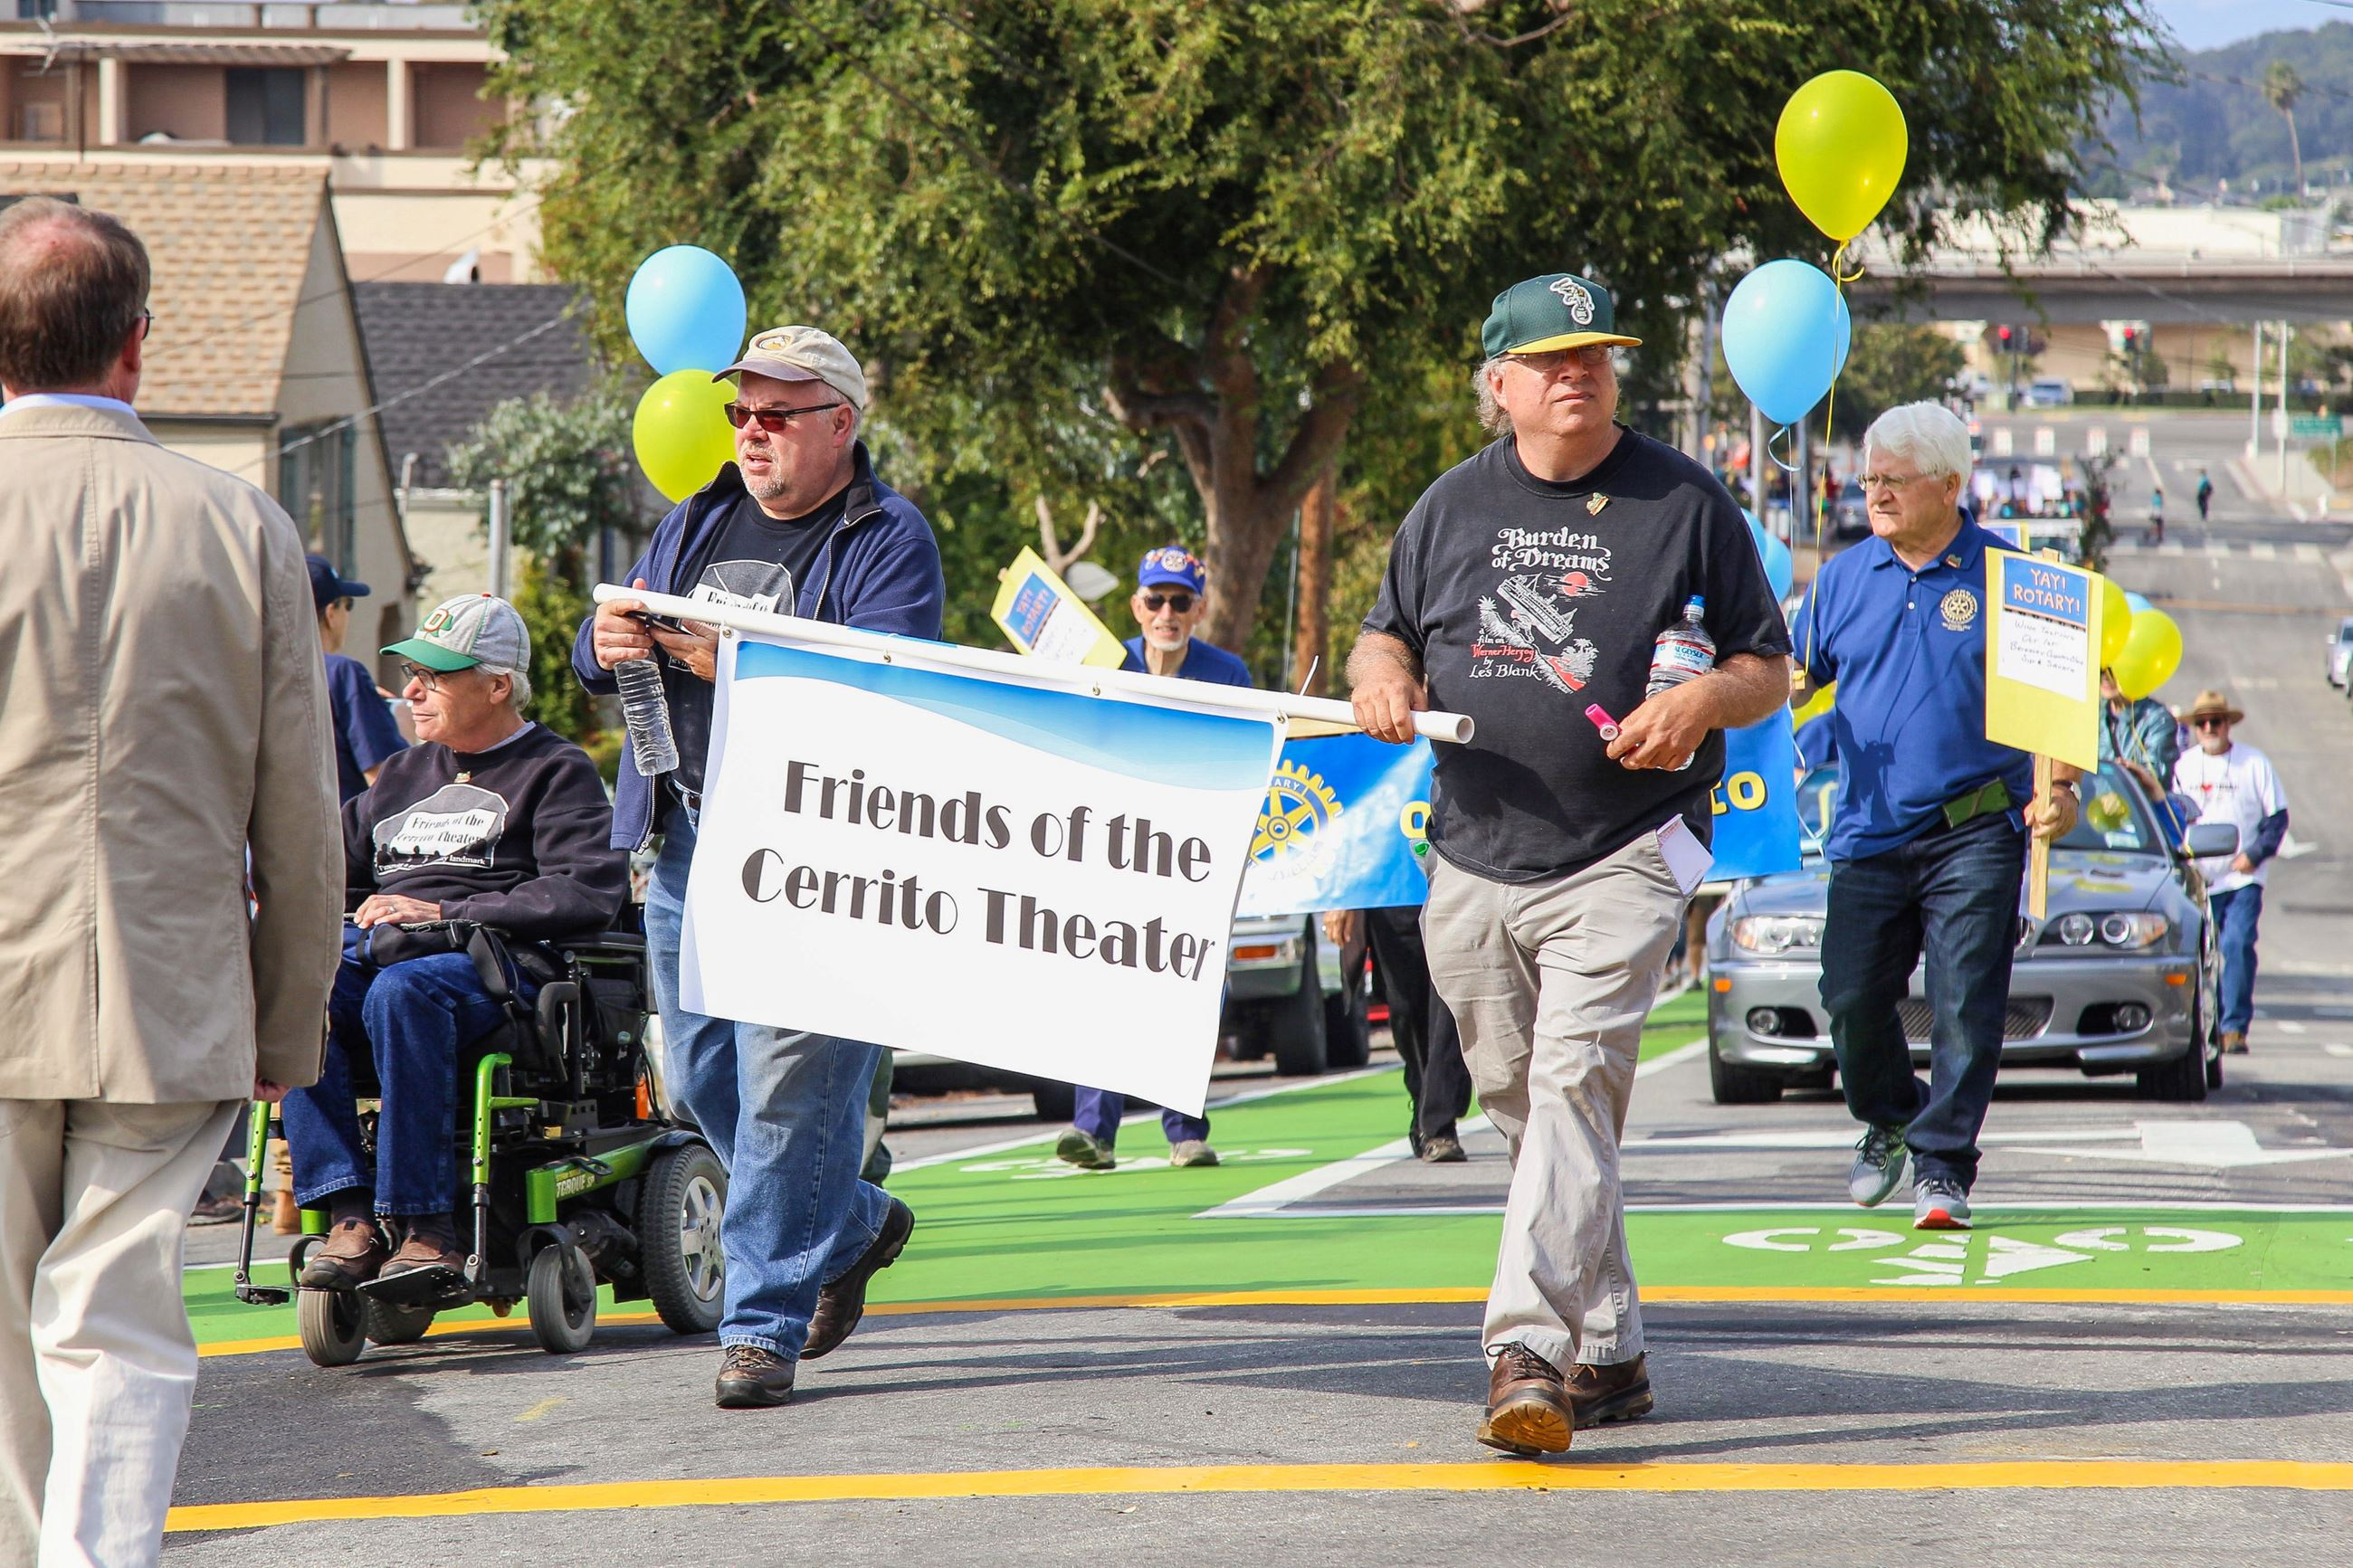 232 Friends of the Cerrito Theatre in the Parade - Photo by Marin Stuart